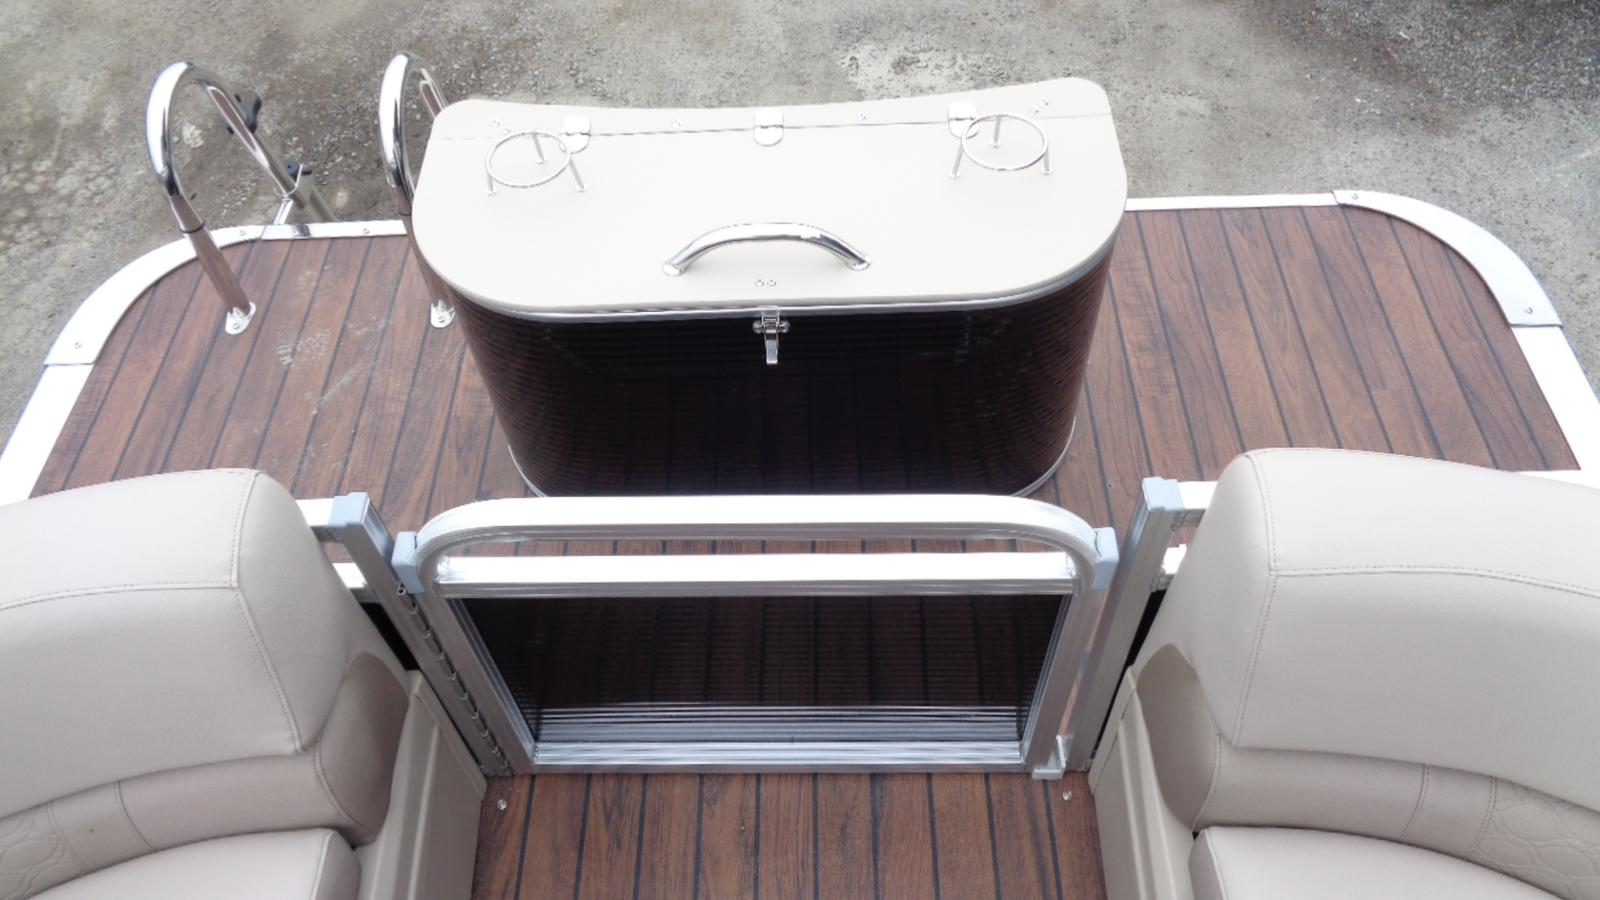 2018 Avalon boat for sale, model of the boat is 22 LSZ Quad Lounger & Image # 7 of 9